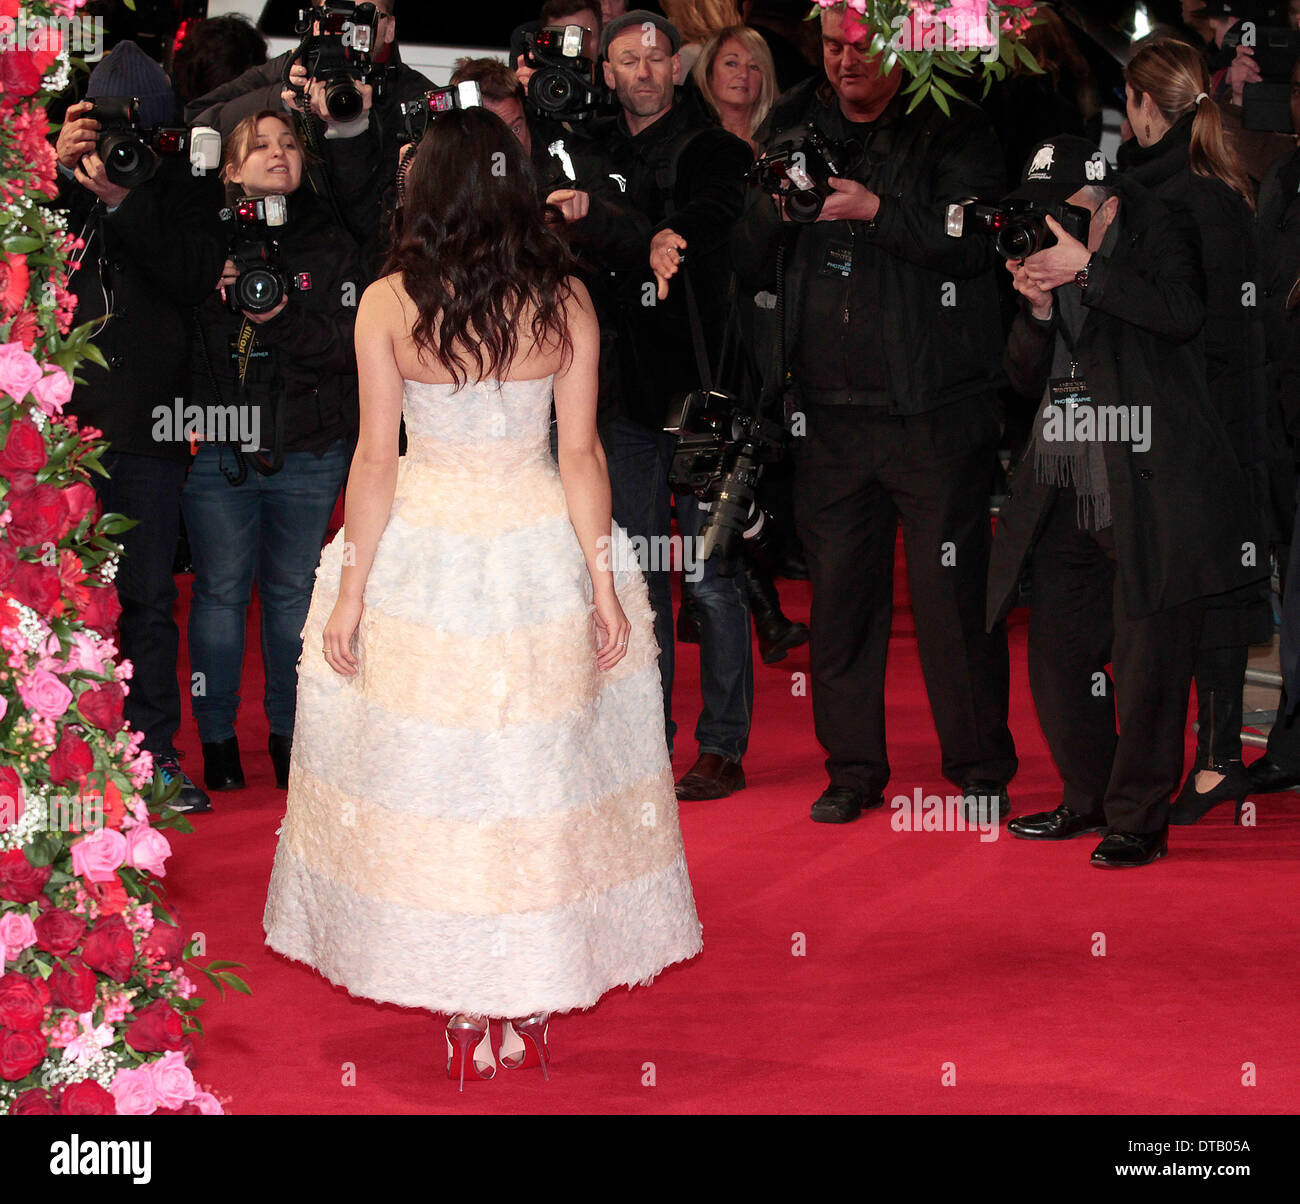 London, UK, 13th February 2014 Jessica Brown Findlay arrives at the UK Premiere of 'A New York Winter's Tale' at the Odeon Cinema at Kensington High Street in London  Credit:  MRP/Alamy Live News - Stock Image